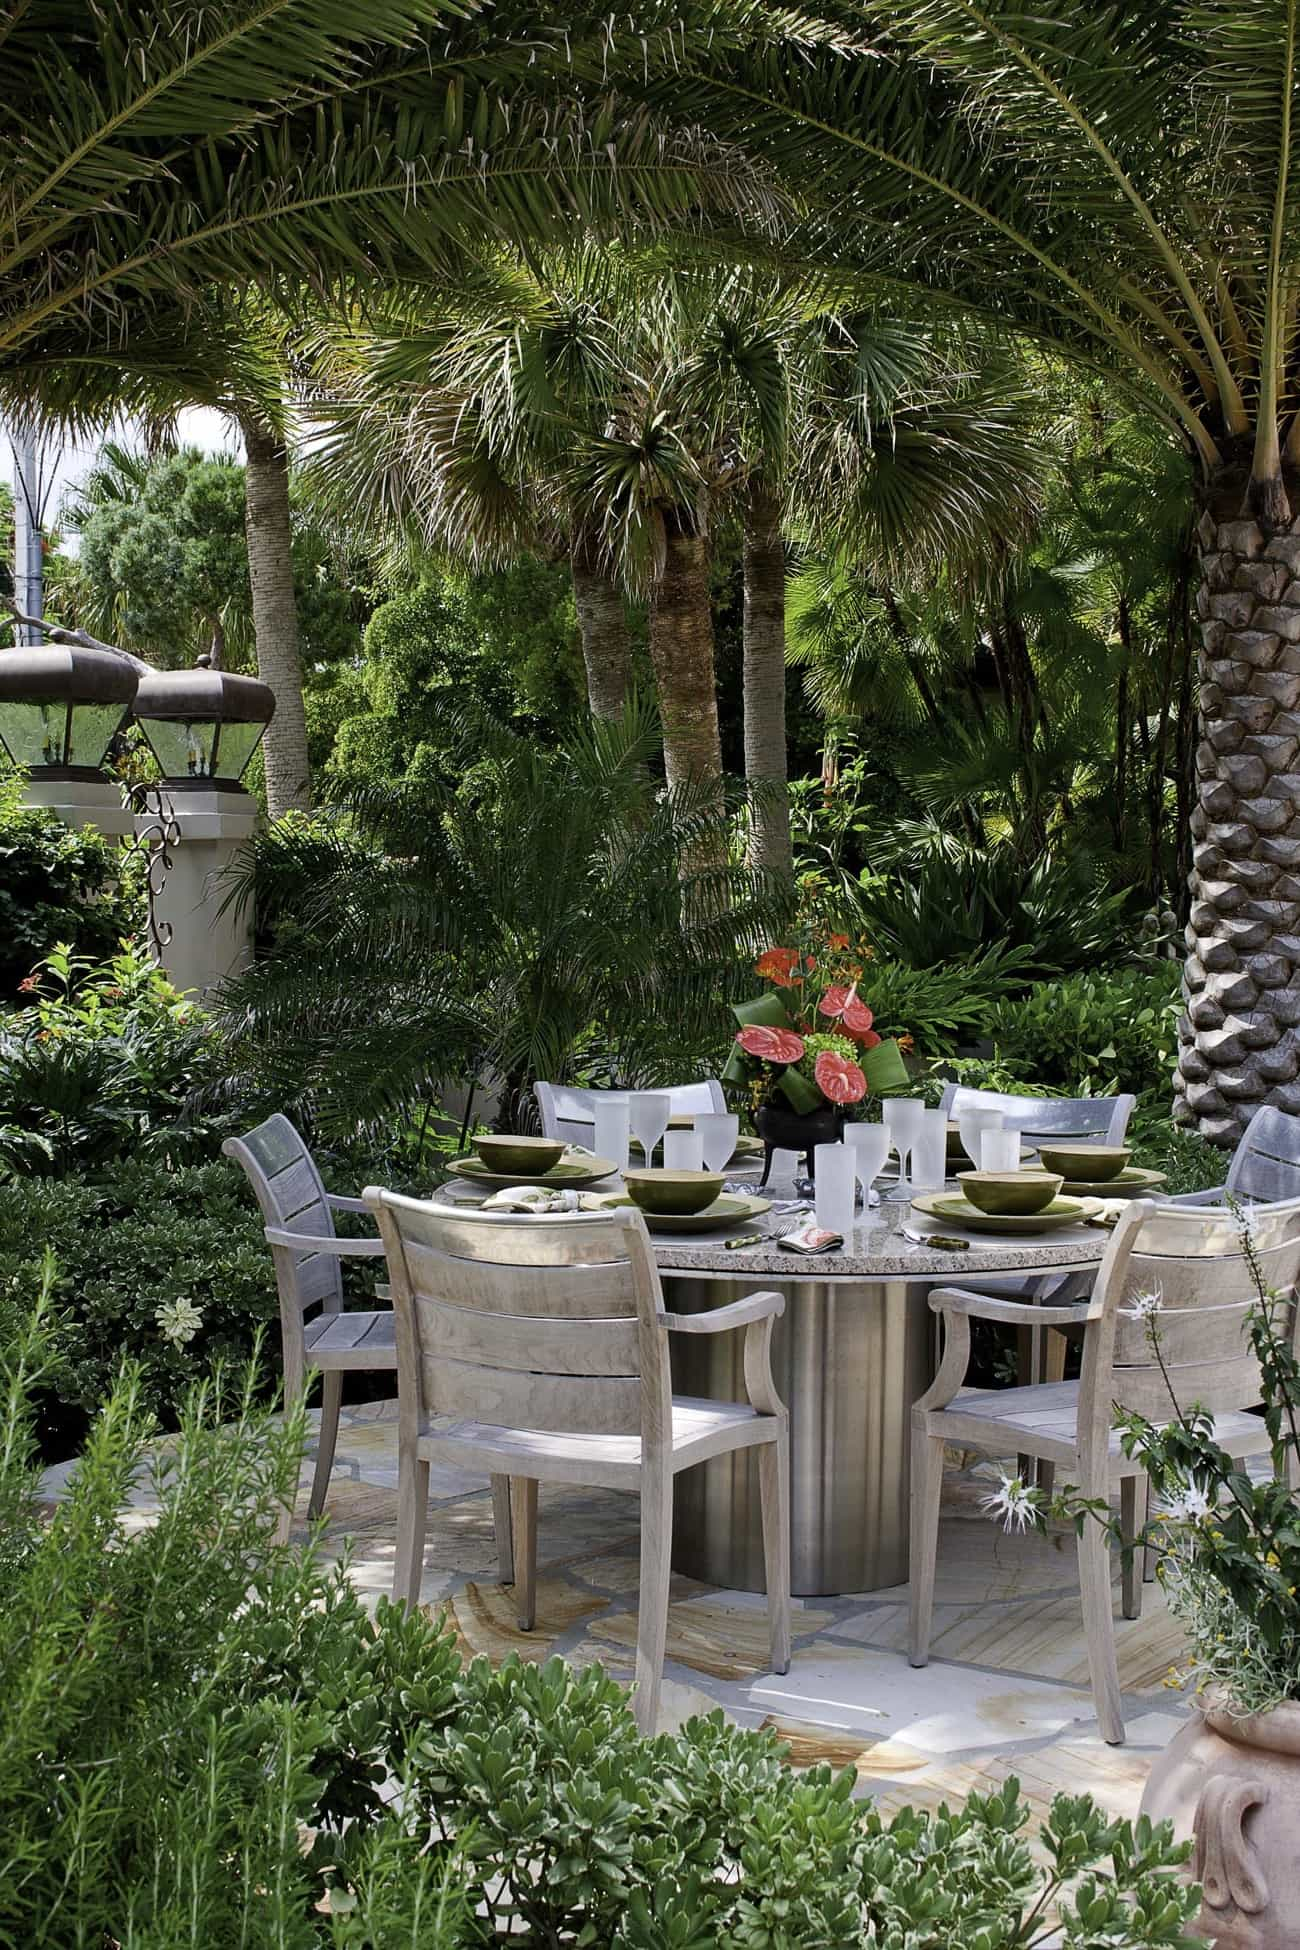 Romantic Outdoor Dining Table Under Palm Trees (Photo 6 of 8)